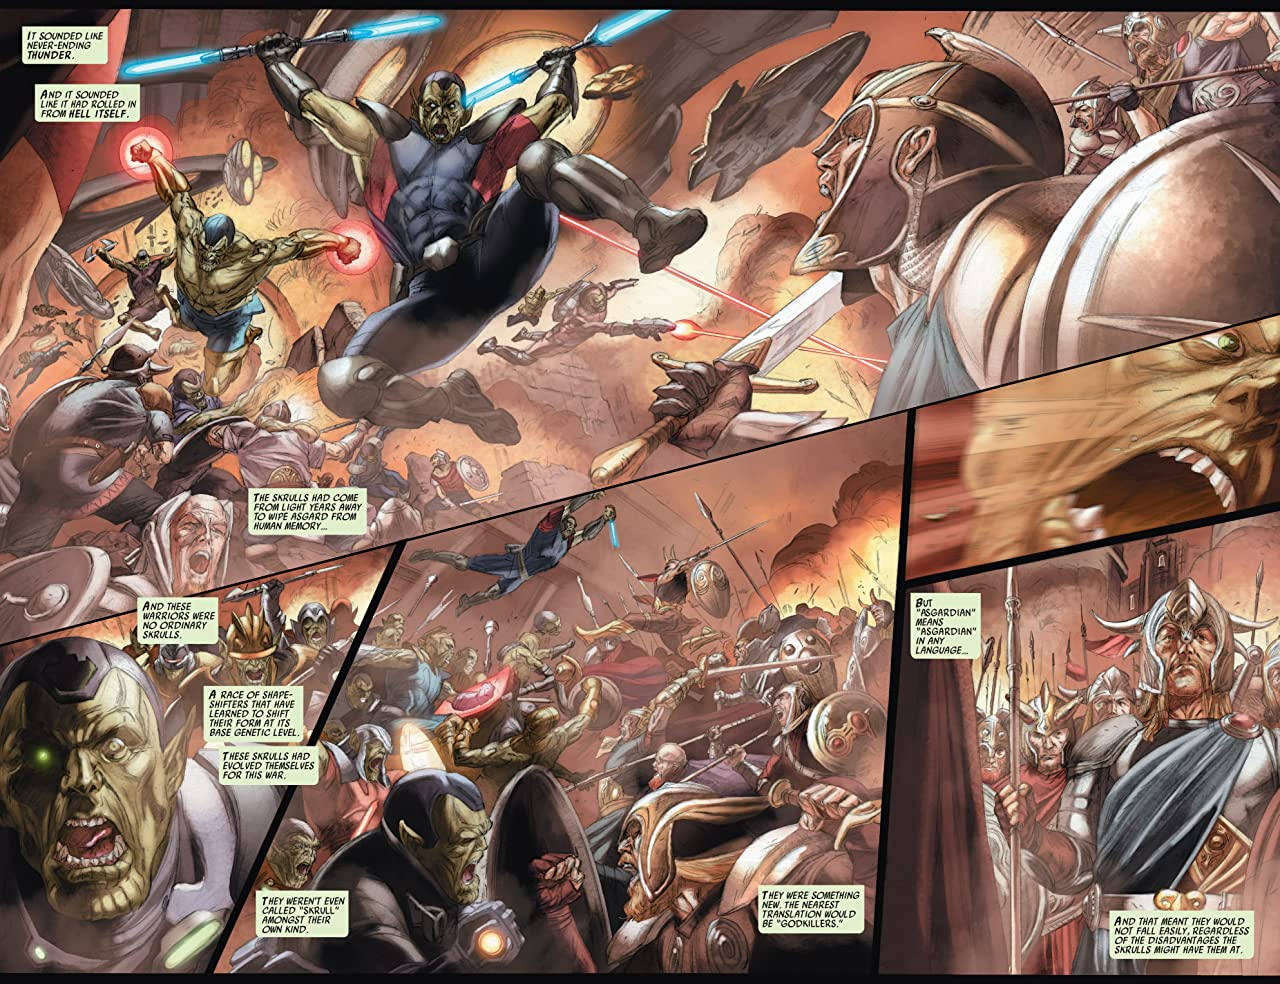 Secret Invasion: Thor #2 (of 3)